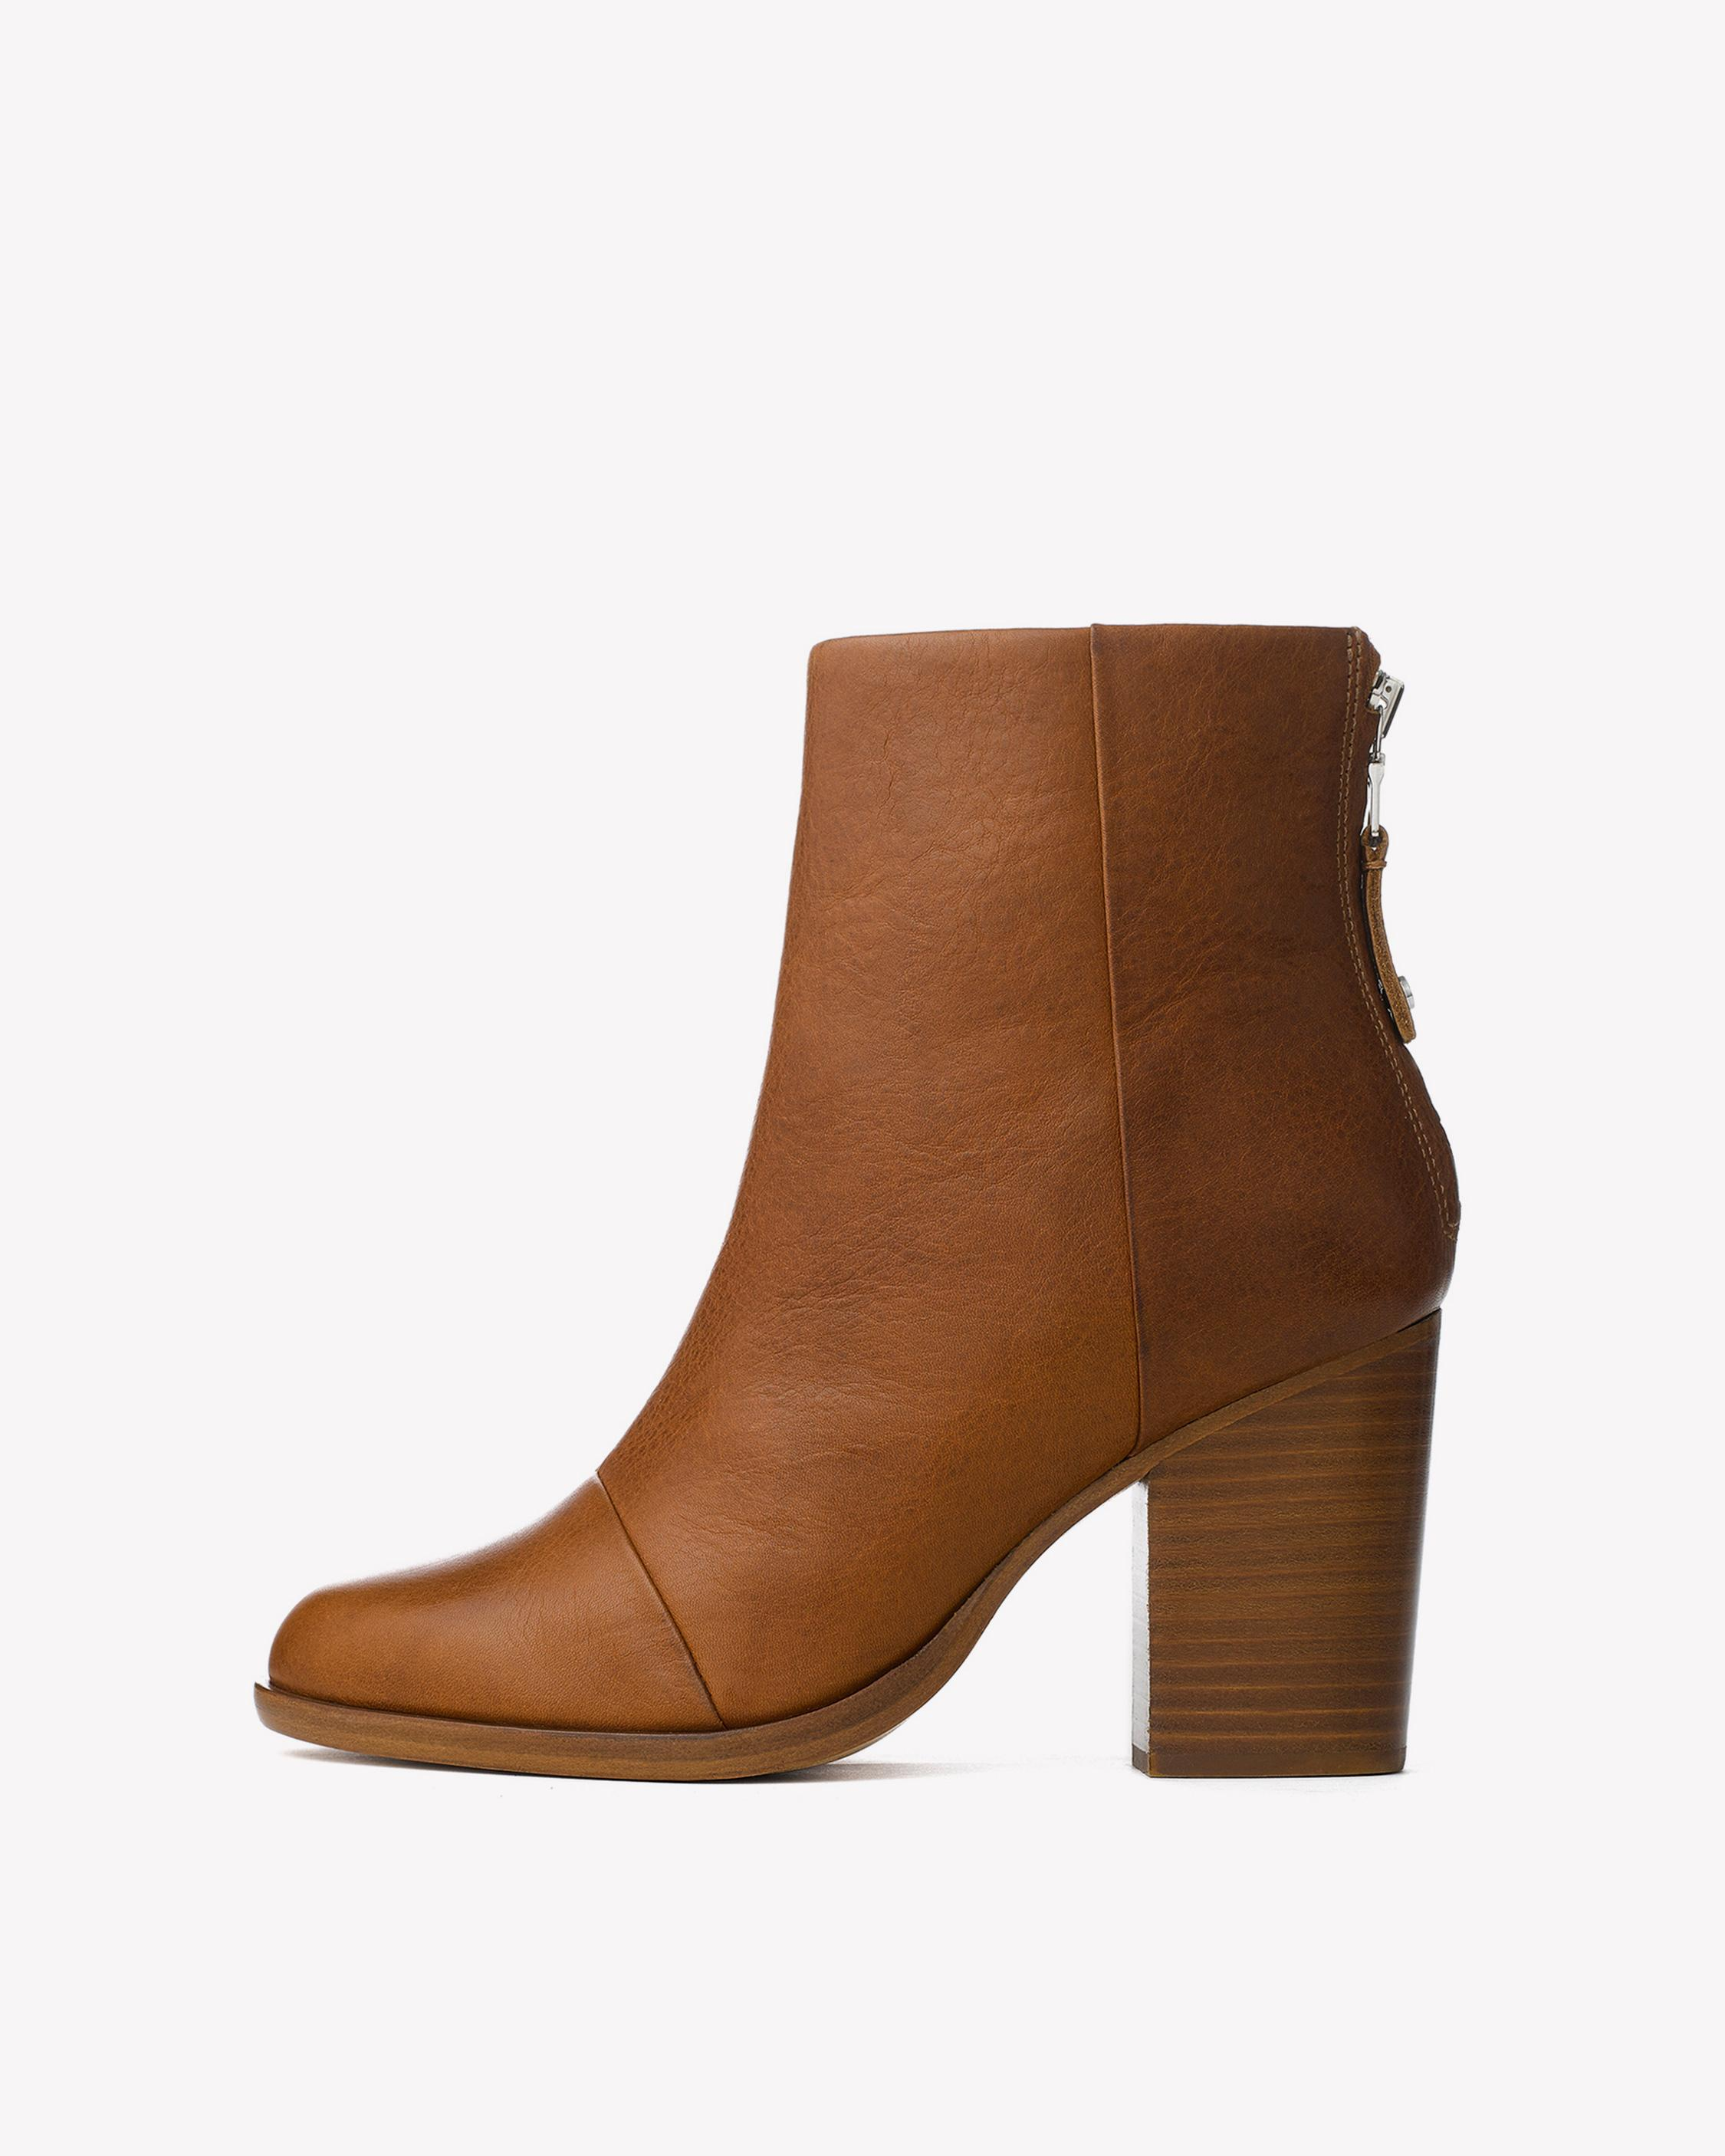 ASHBY ANKLE HIGH BOOT